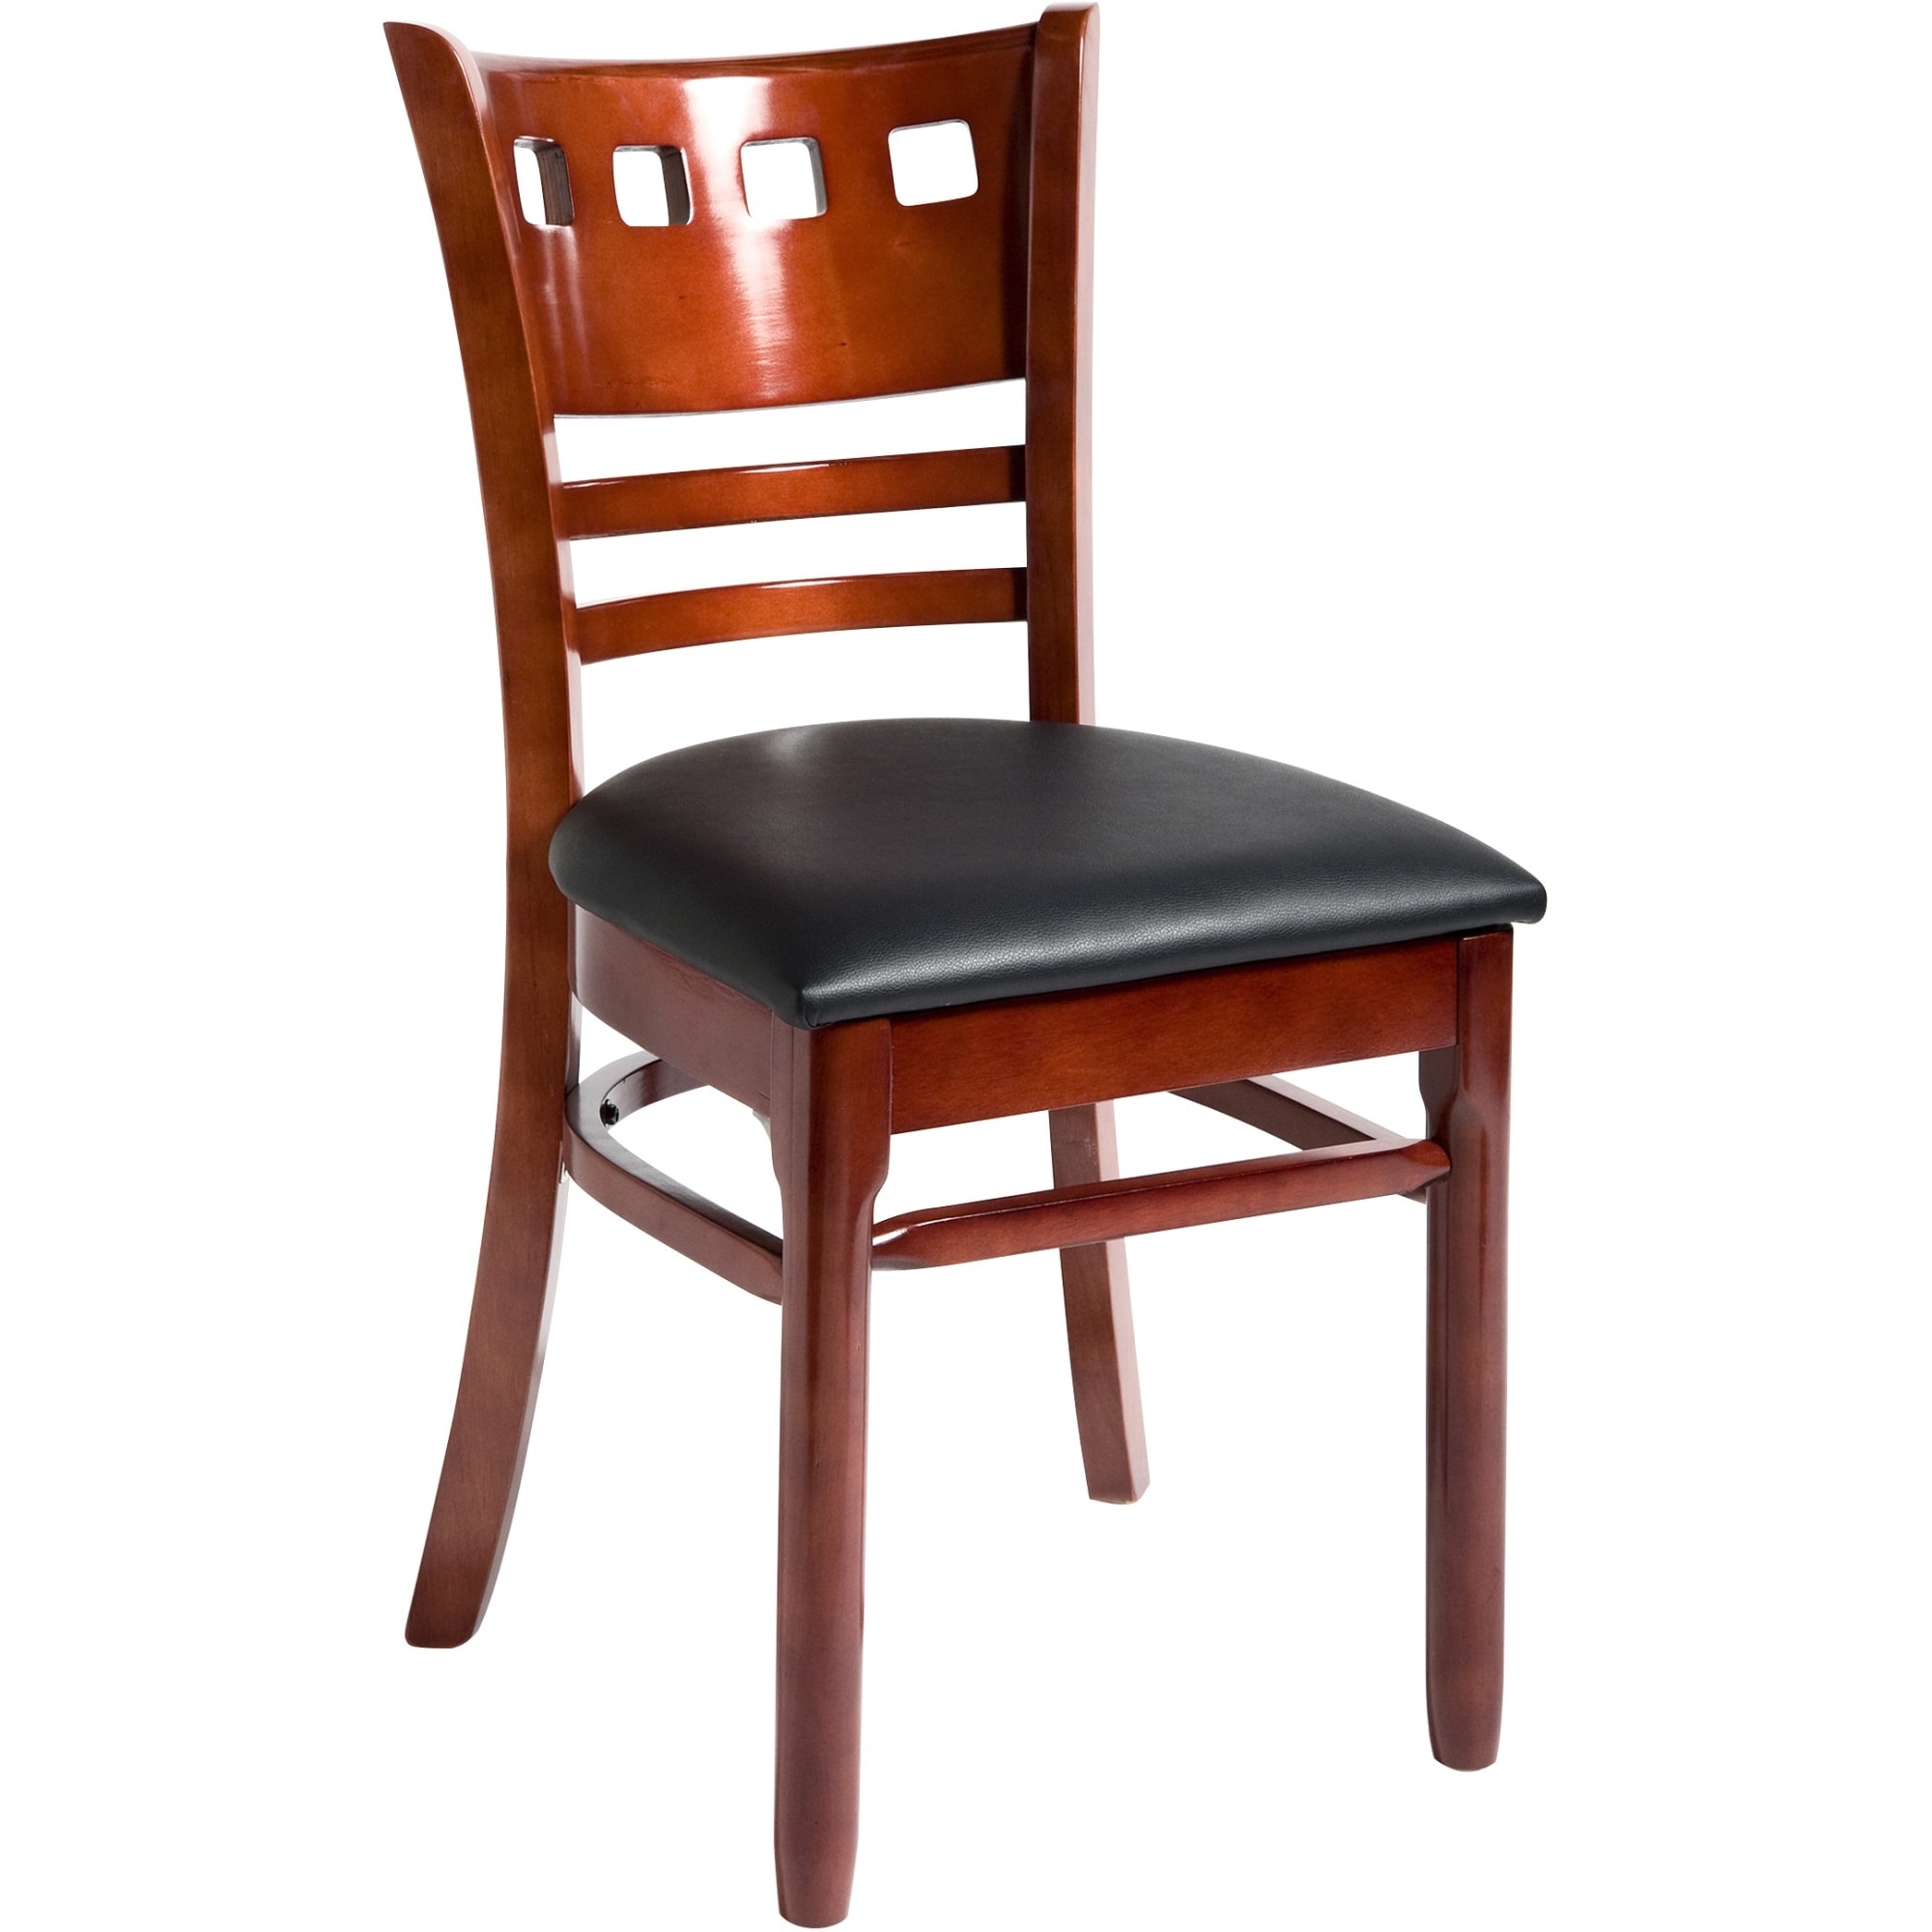 American Back Wood Chair